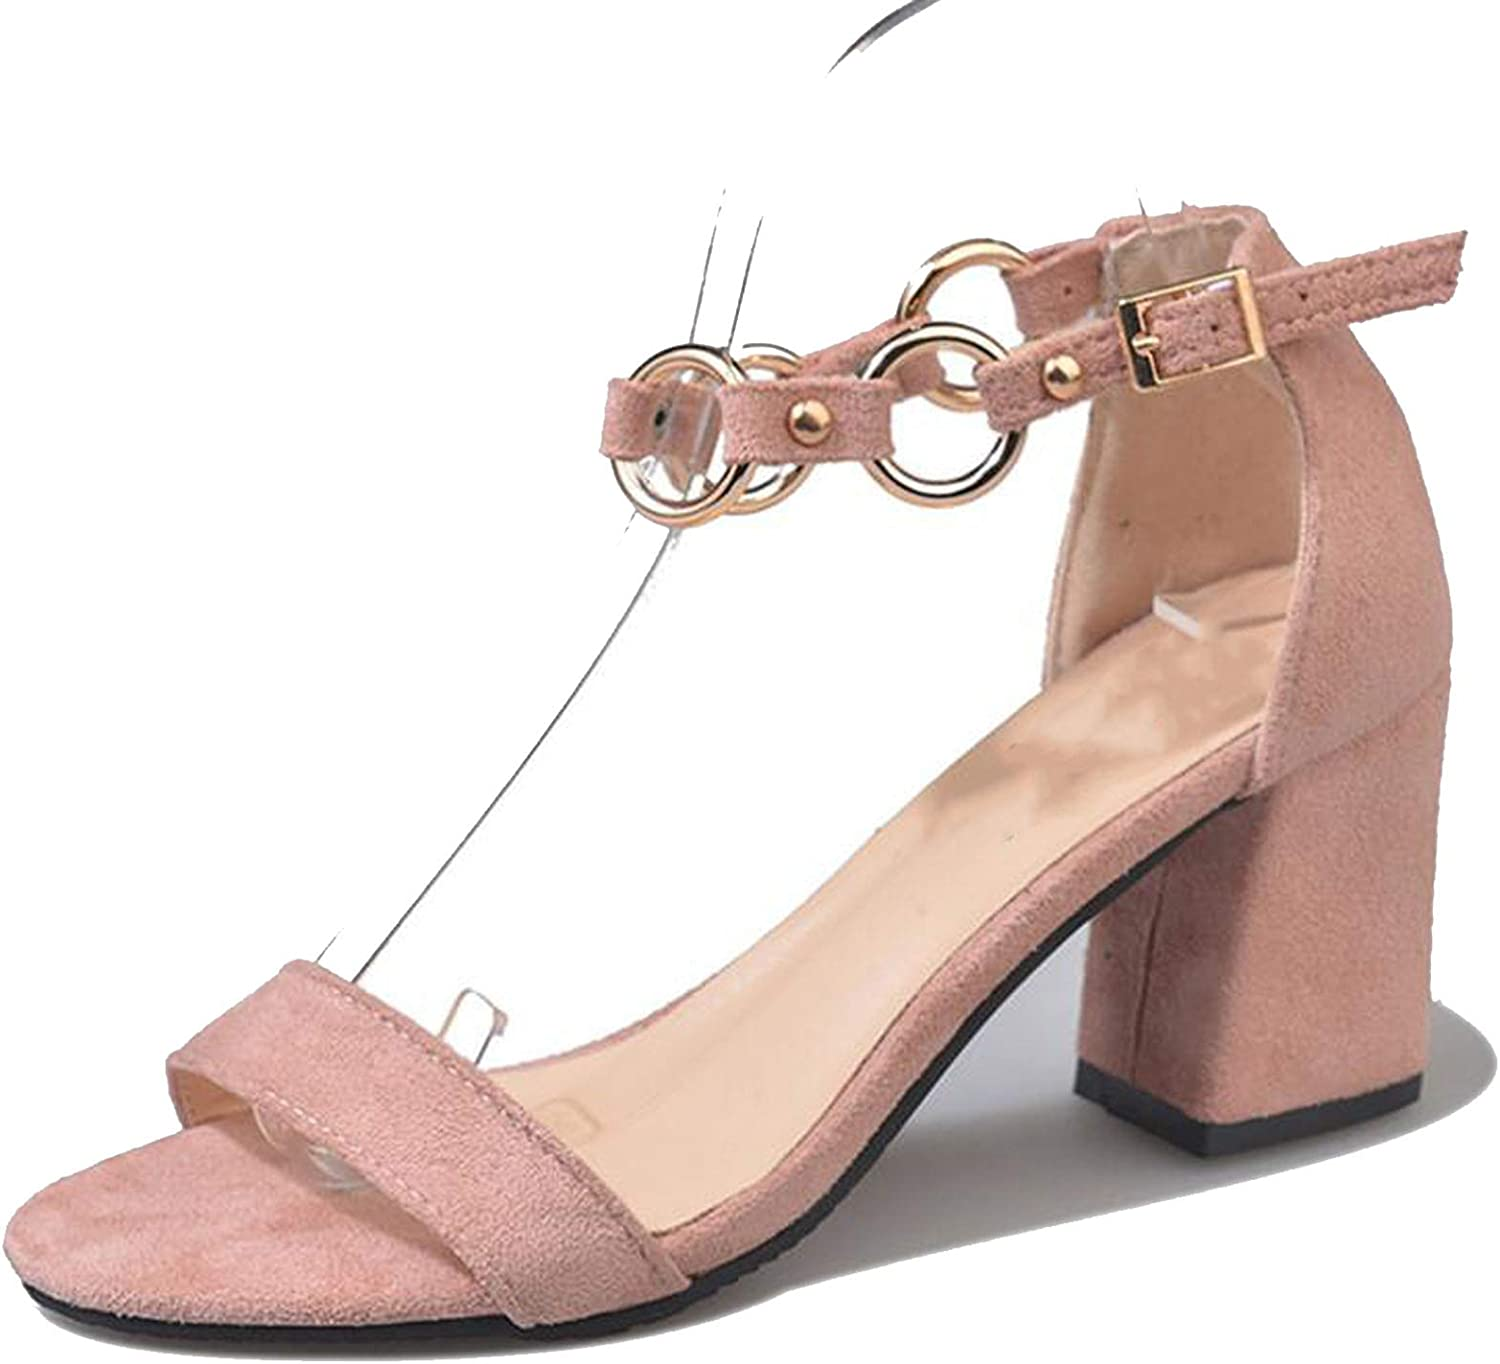 2018 Woman Sandals Open Toe Metal Ring Buckles High Heels Fashion Thick High Heels Sandals shoes